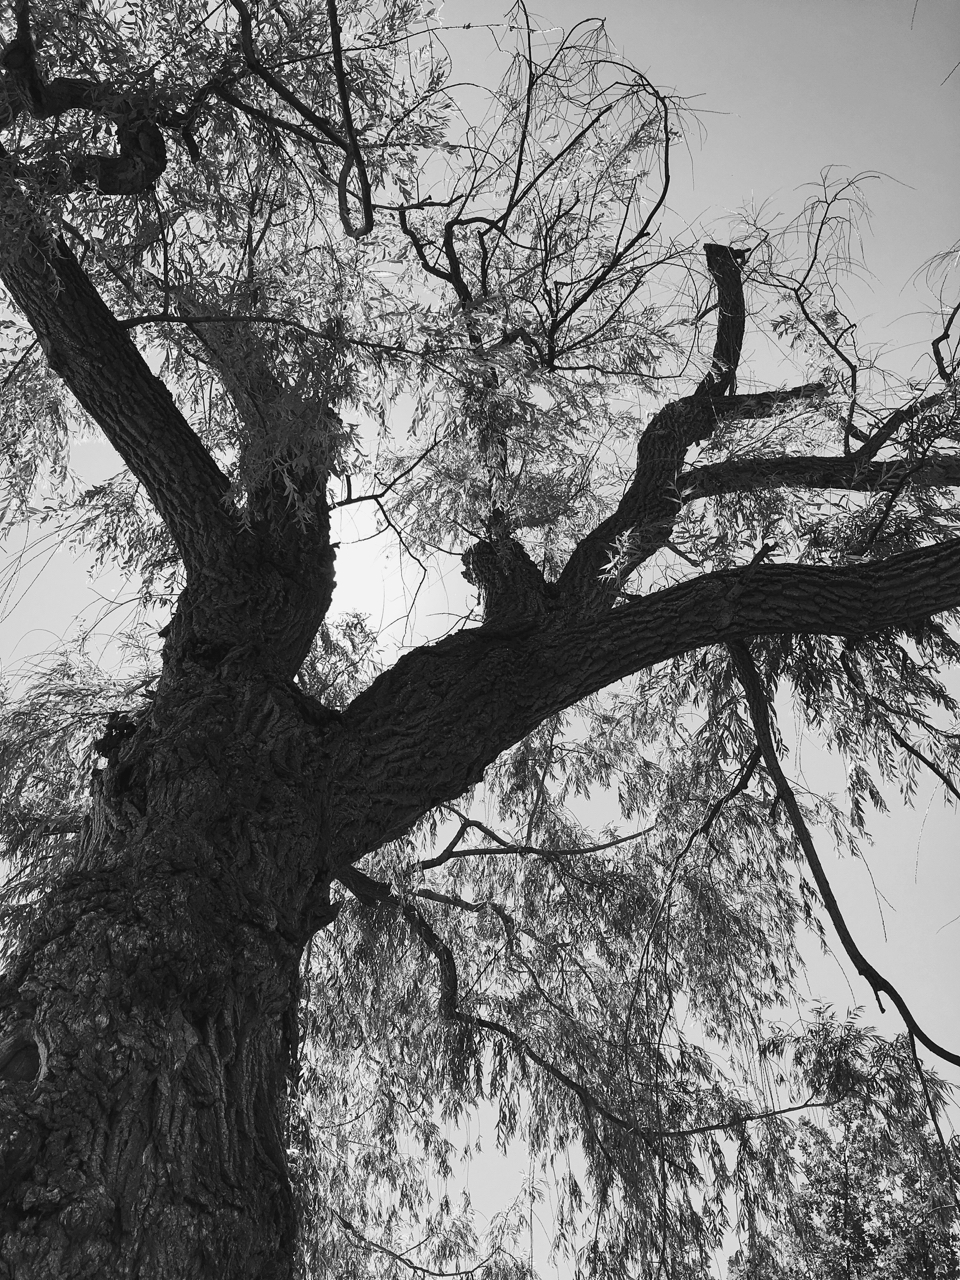 When trees speak, looking up into old willow growing at the Forks of the River, London, Ontario